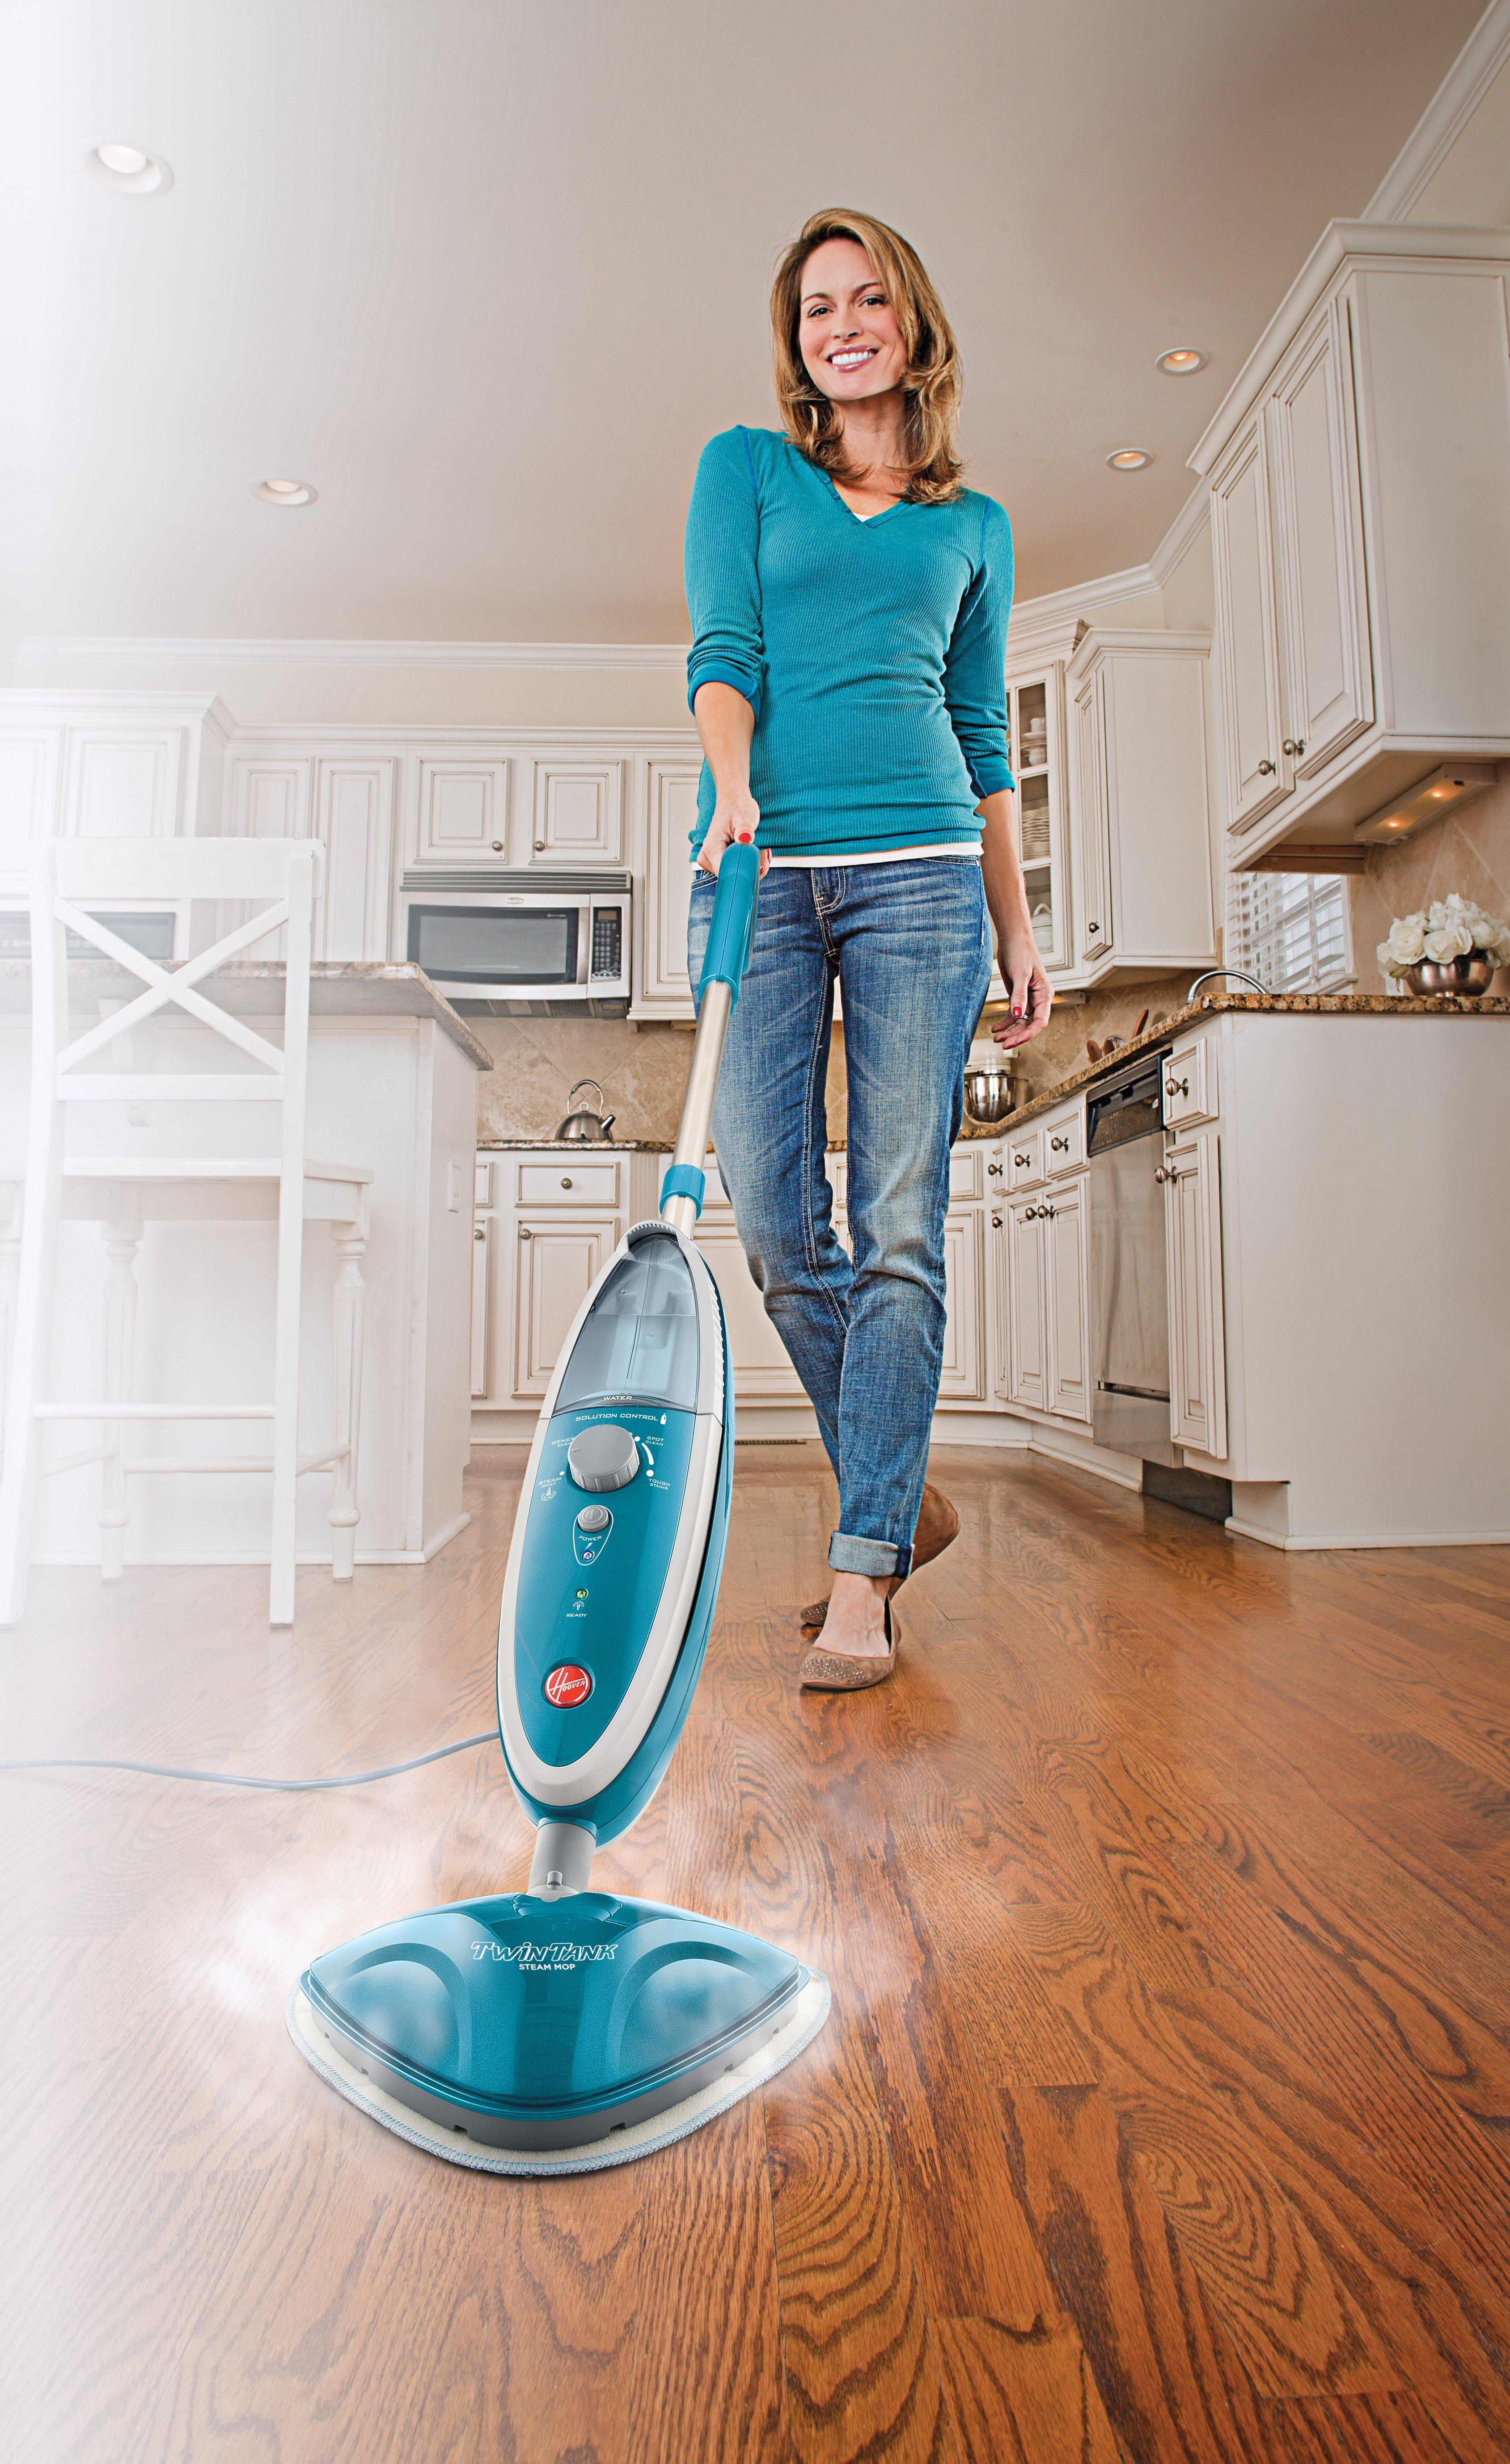 hoover twintank steam mop steam cleaner wh20200. Black Bedroom Furniture Sets. Home Design Ideas